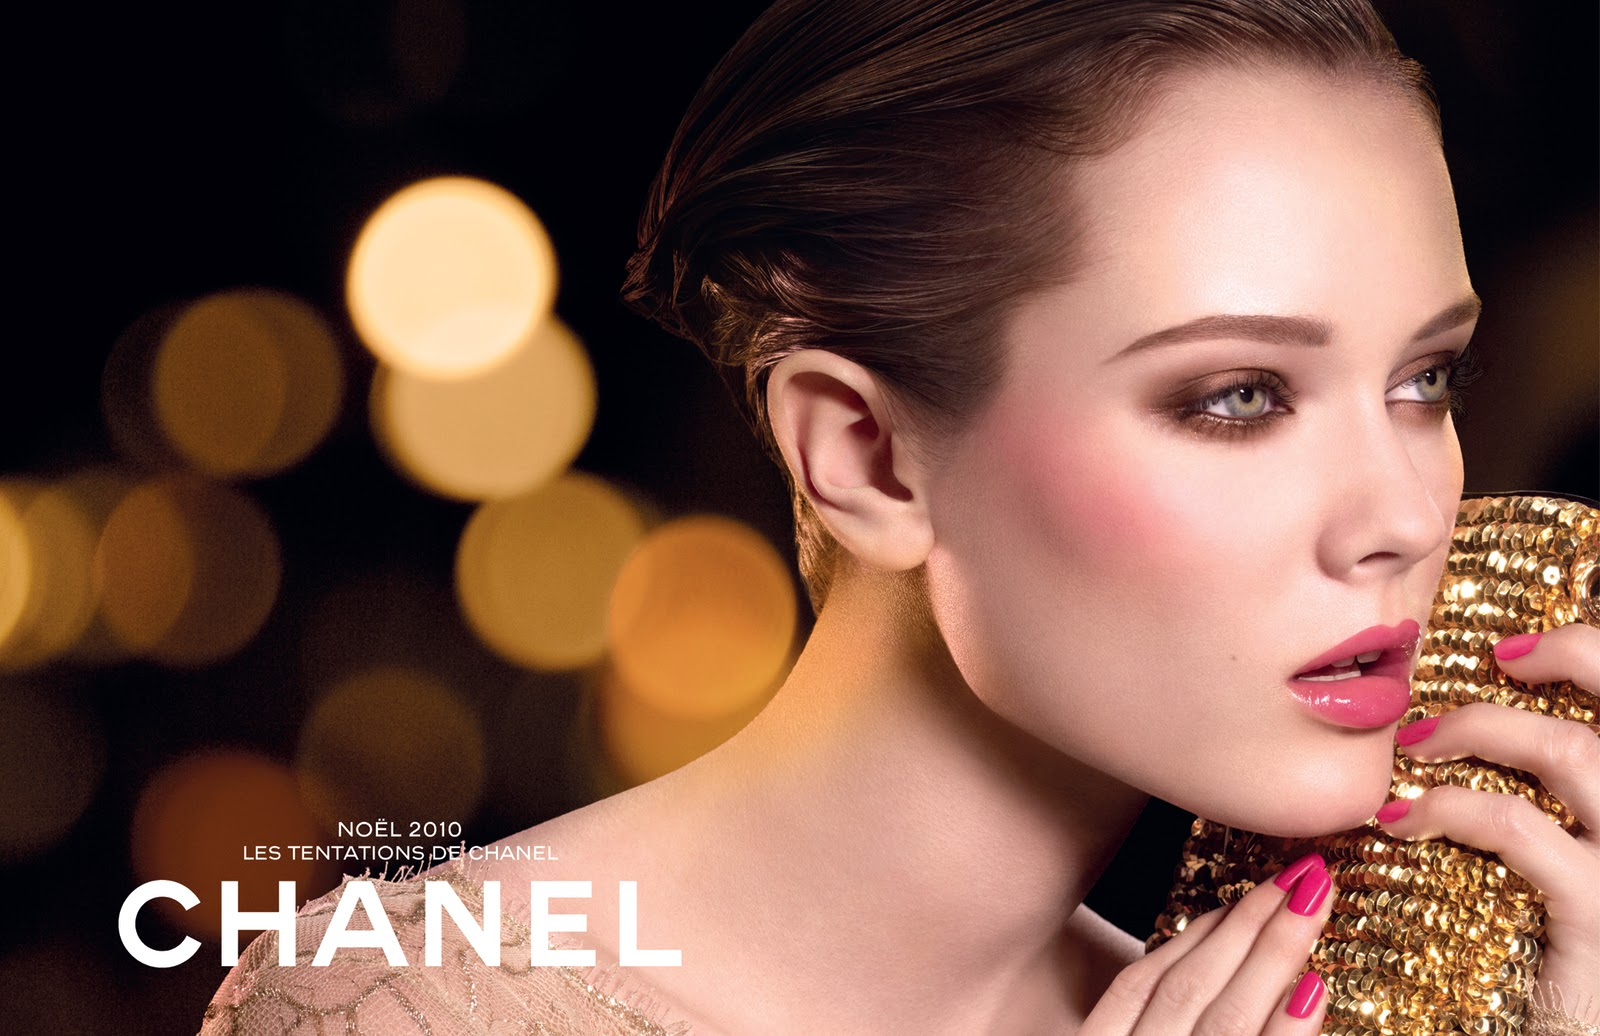 Chanel Les Tentations de Chanel Holiday 2010 Collection